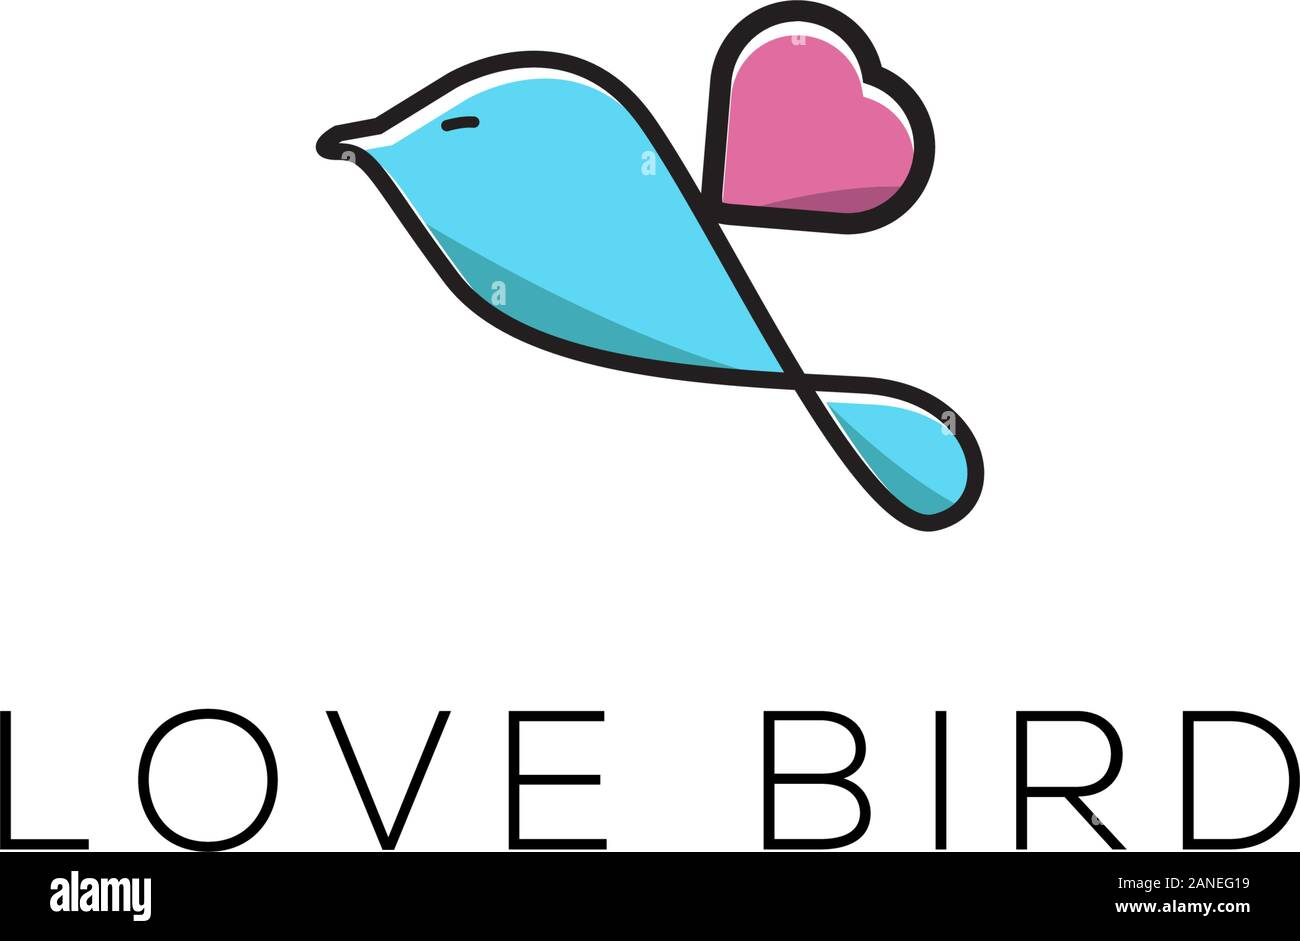 Get Logo Love Bird